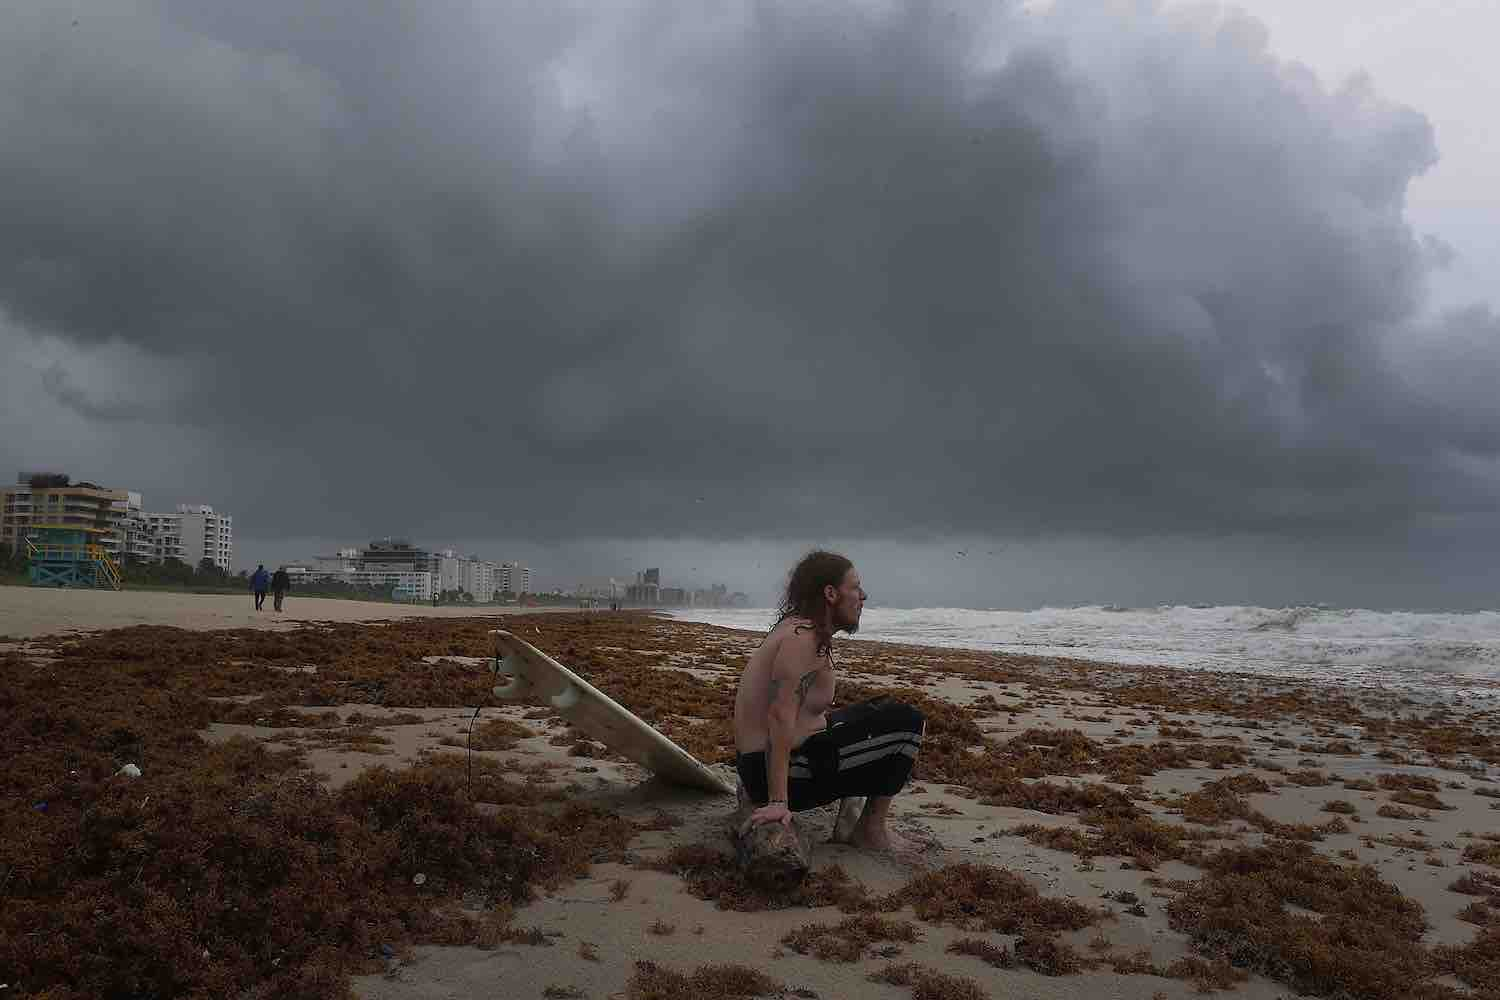 <div class='meta'><div class='origin-logo' data-origin='Creative Content'></div><span class='caption-text' data-credit='Joe Raedle/Getty'>James Sampero waits for the correct currents to head out and surf in the churning ocean as Hurricane Irma approaches on September 9, 2017 in Miami Beach, Florida.</span></div>